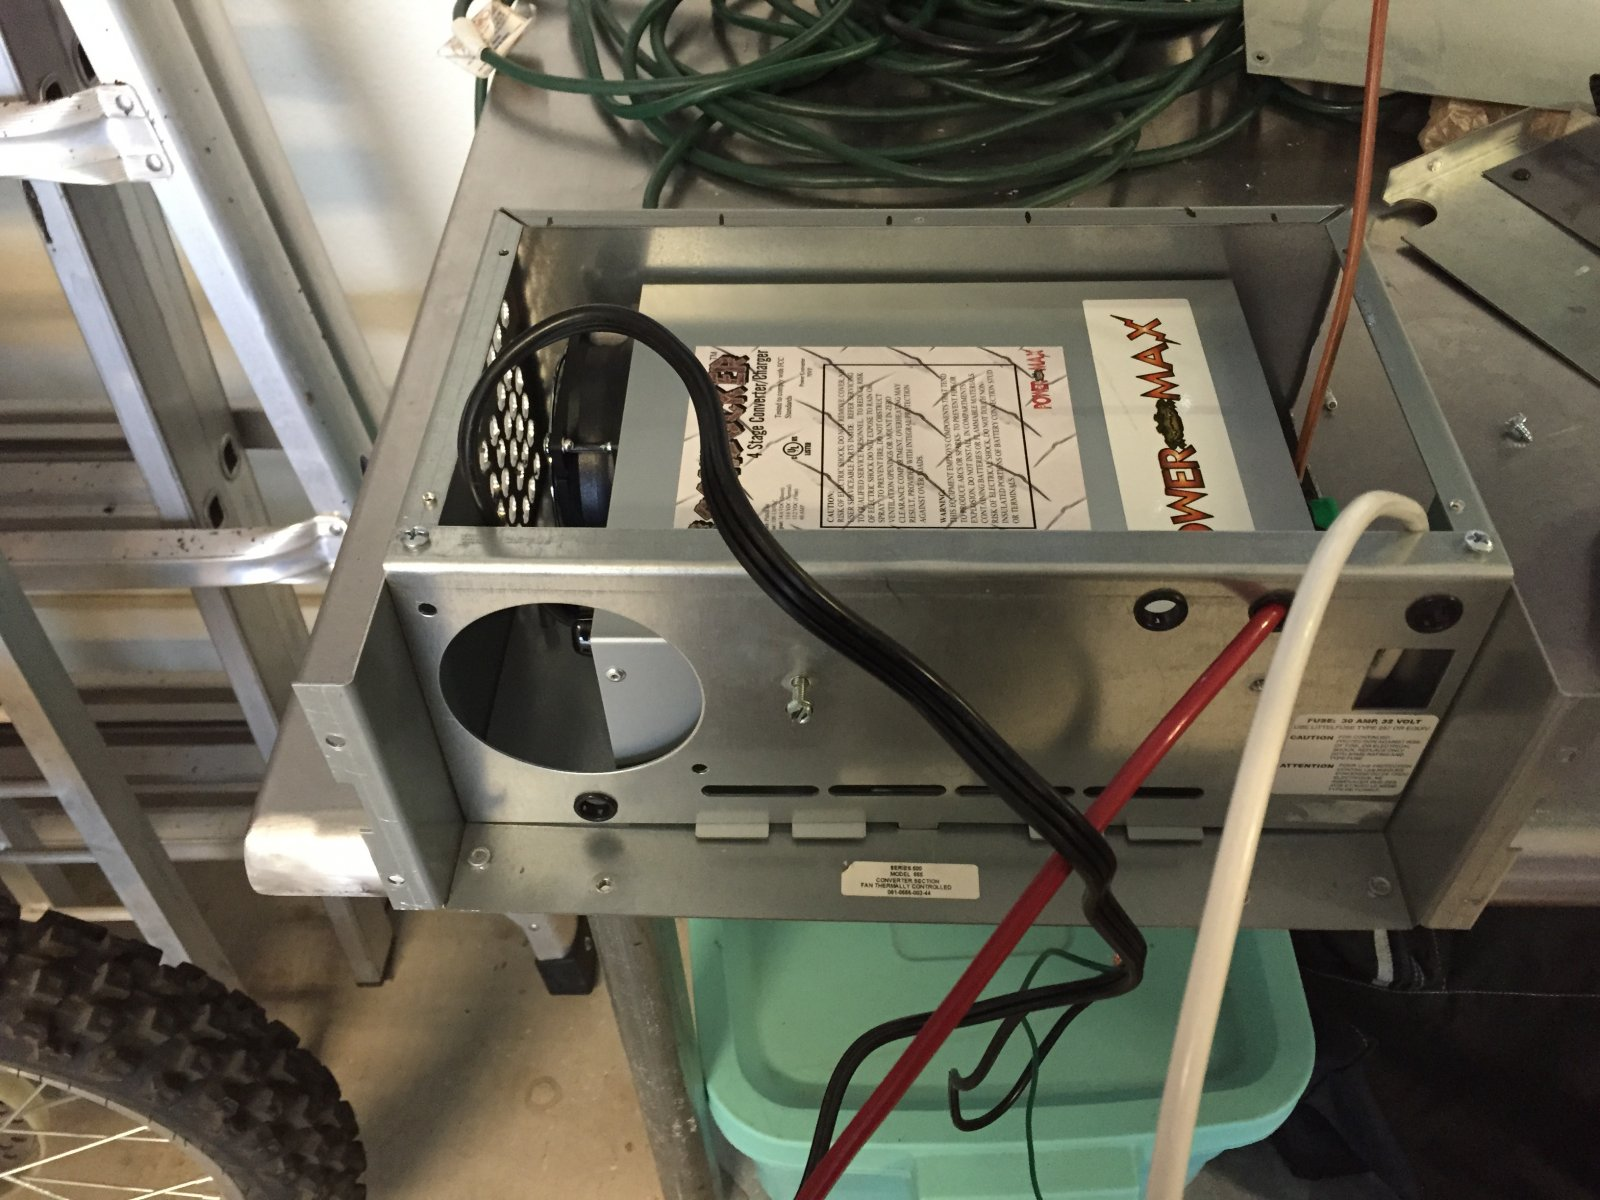 Installing a 4-stage converter/charger in your new Airstream - Page on cooper wiring diagram, sullair wiring diagram, smc wiring diagram, abb wiring diagram, clark wiring diagram, ingersoll rand wiring diagram, matrix wiring diagram, norton wiring diagram, apc wiring diagram, toshiba wiring diagram, taylor wiring diagram, little giant wiring diagram, demag wiring diagram, mettler toledo wiring diagram, yaskawa wiring diagram, panasonic wiring diagram, a.o. smith wiring diagram, viking wiring diagram, johnson controls wiring diagram, msi wiring diagram,